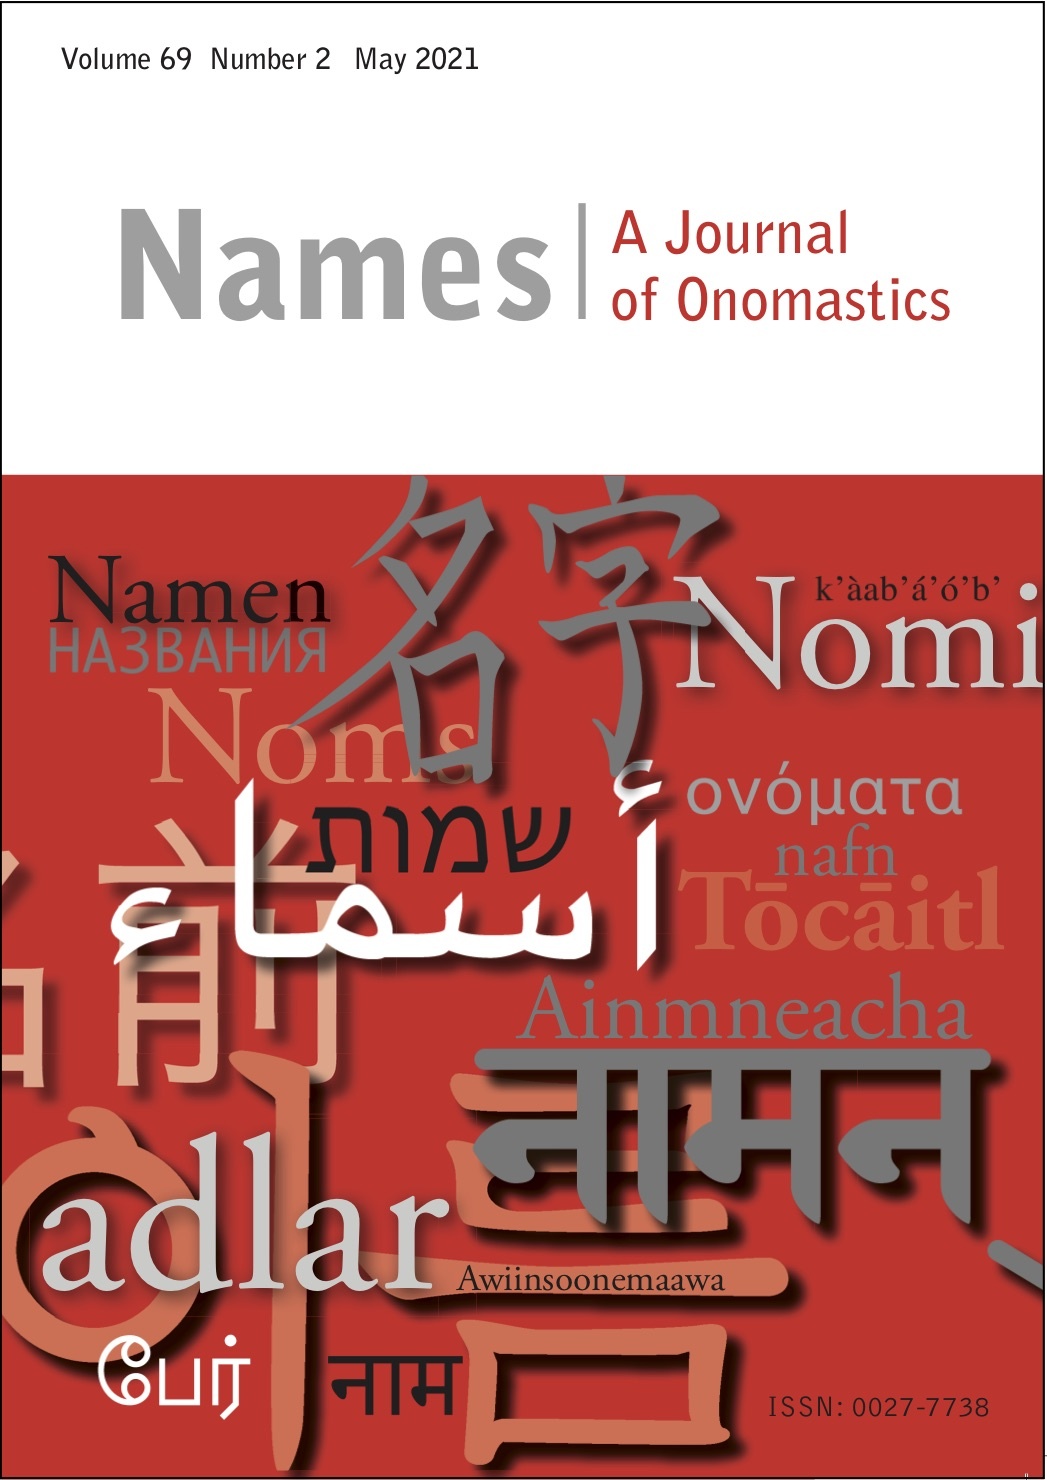 Cover of Names Volume 69 Number 2 May 2021